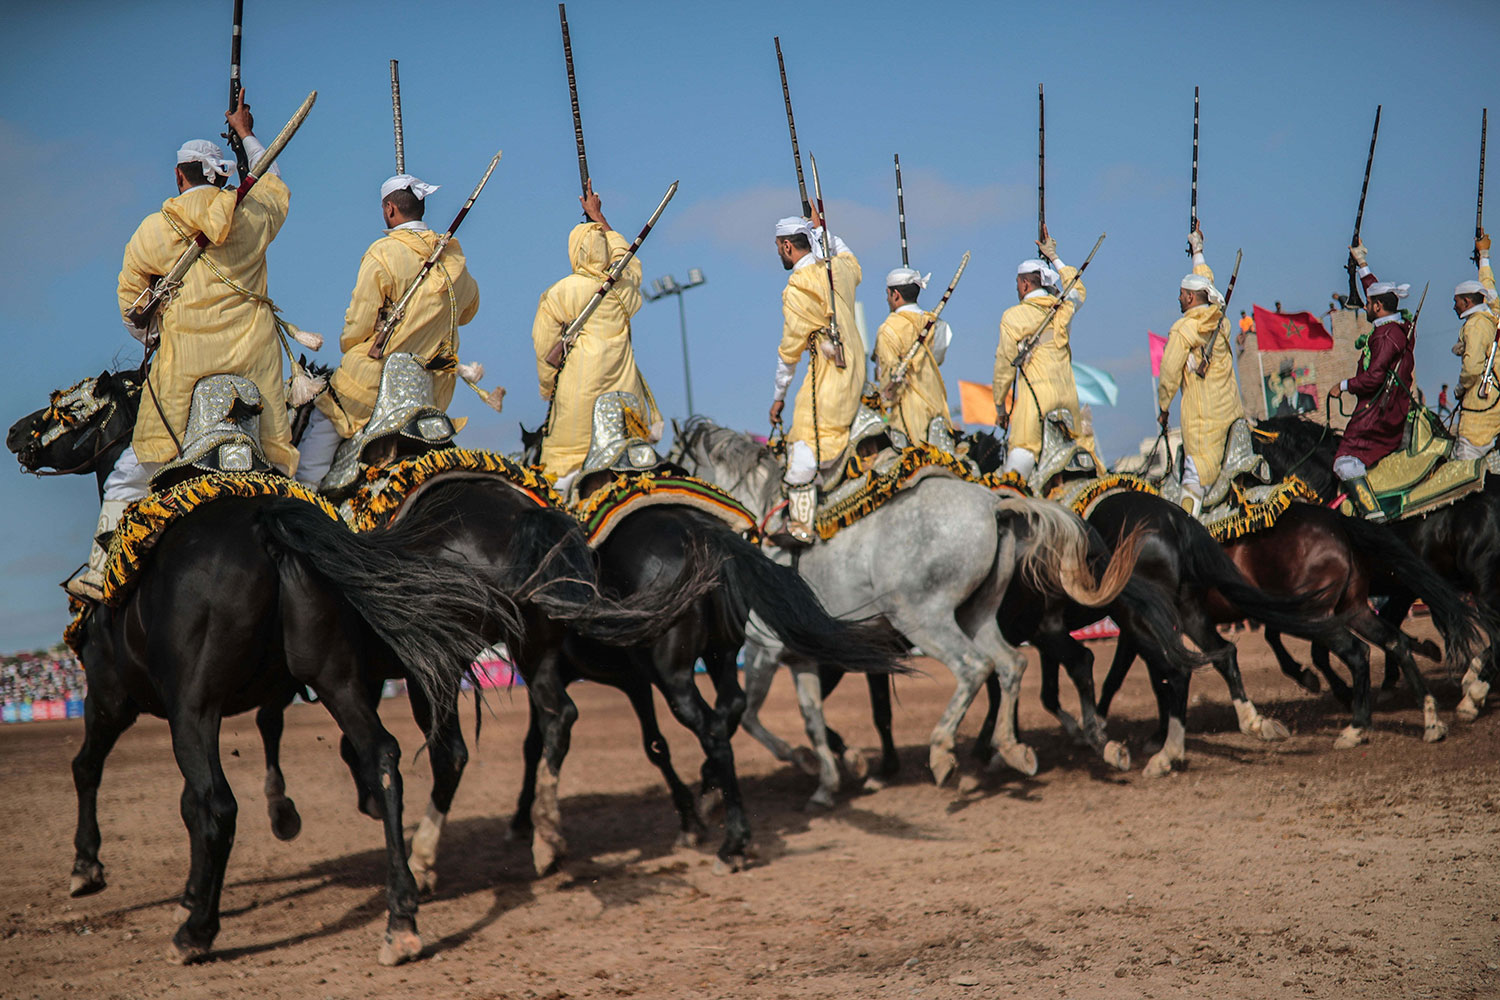 In this Thursday, July 25, 2019 photo, a troupe charges and hold their rifles before firing, during Tabourida, a traditional horse riding show also known as Fantasia, in the coastal town of El Jadida, Morocco. (AP Photo/Mosa'ab Elshamy)